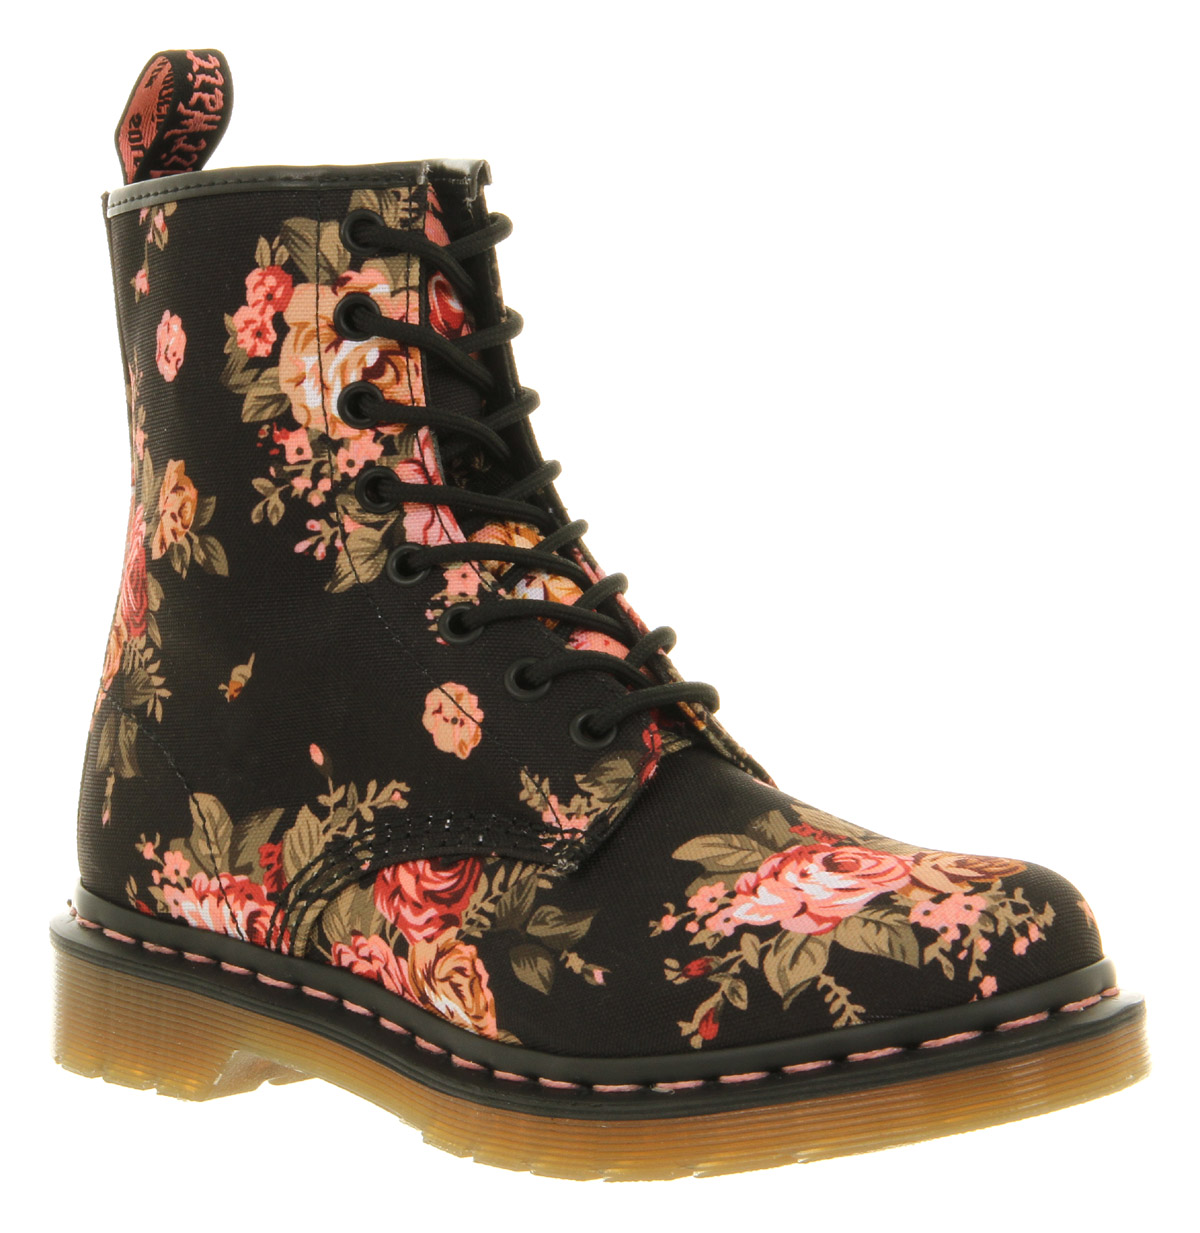 womens dr martens 8 eyelet lace up bt black floral boots. Black Bedroom Furniture Sets. Home Design Ideas